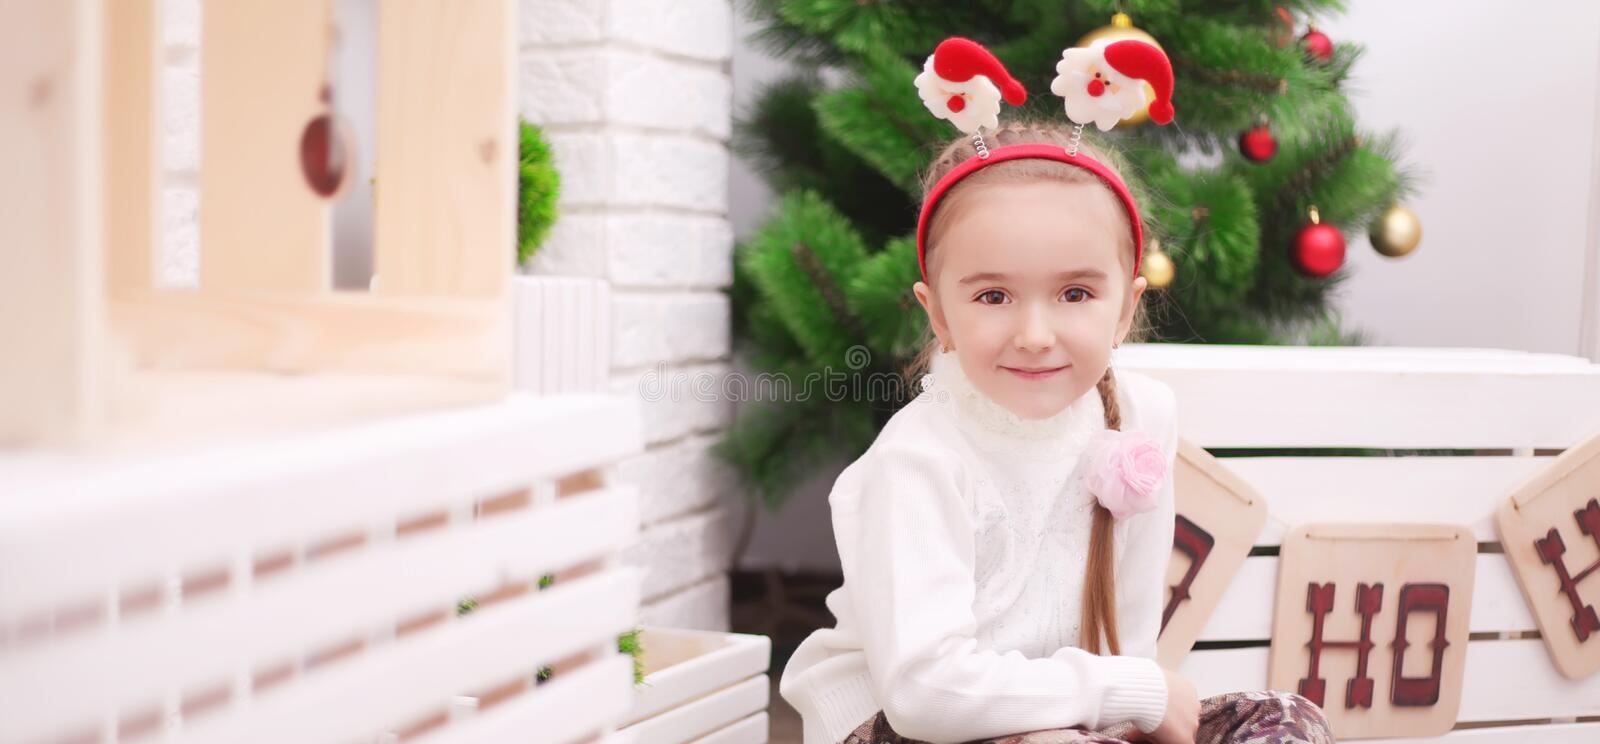 Cute baby girl sitting under christmas tree in room royalty free stock photography